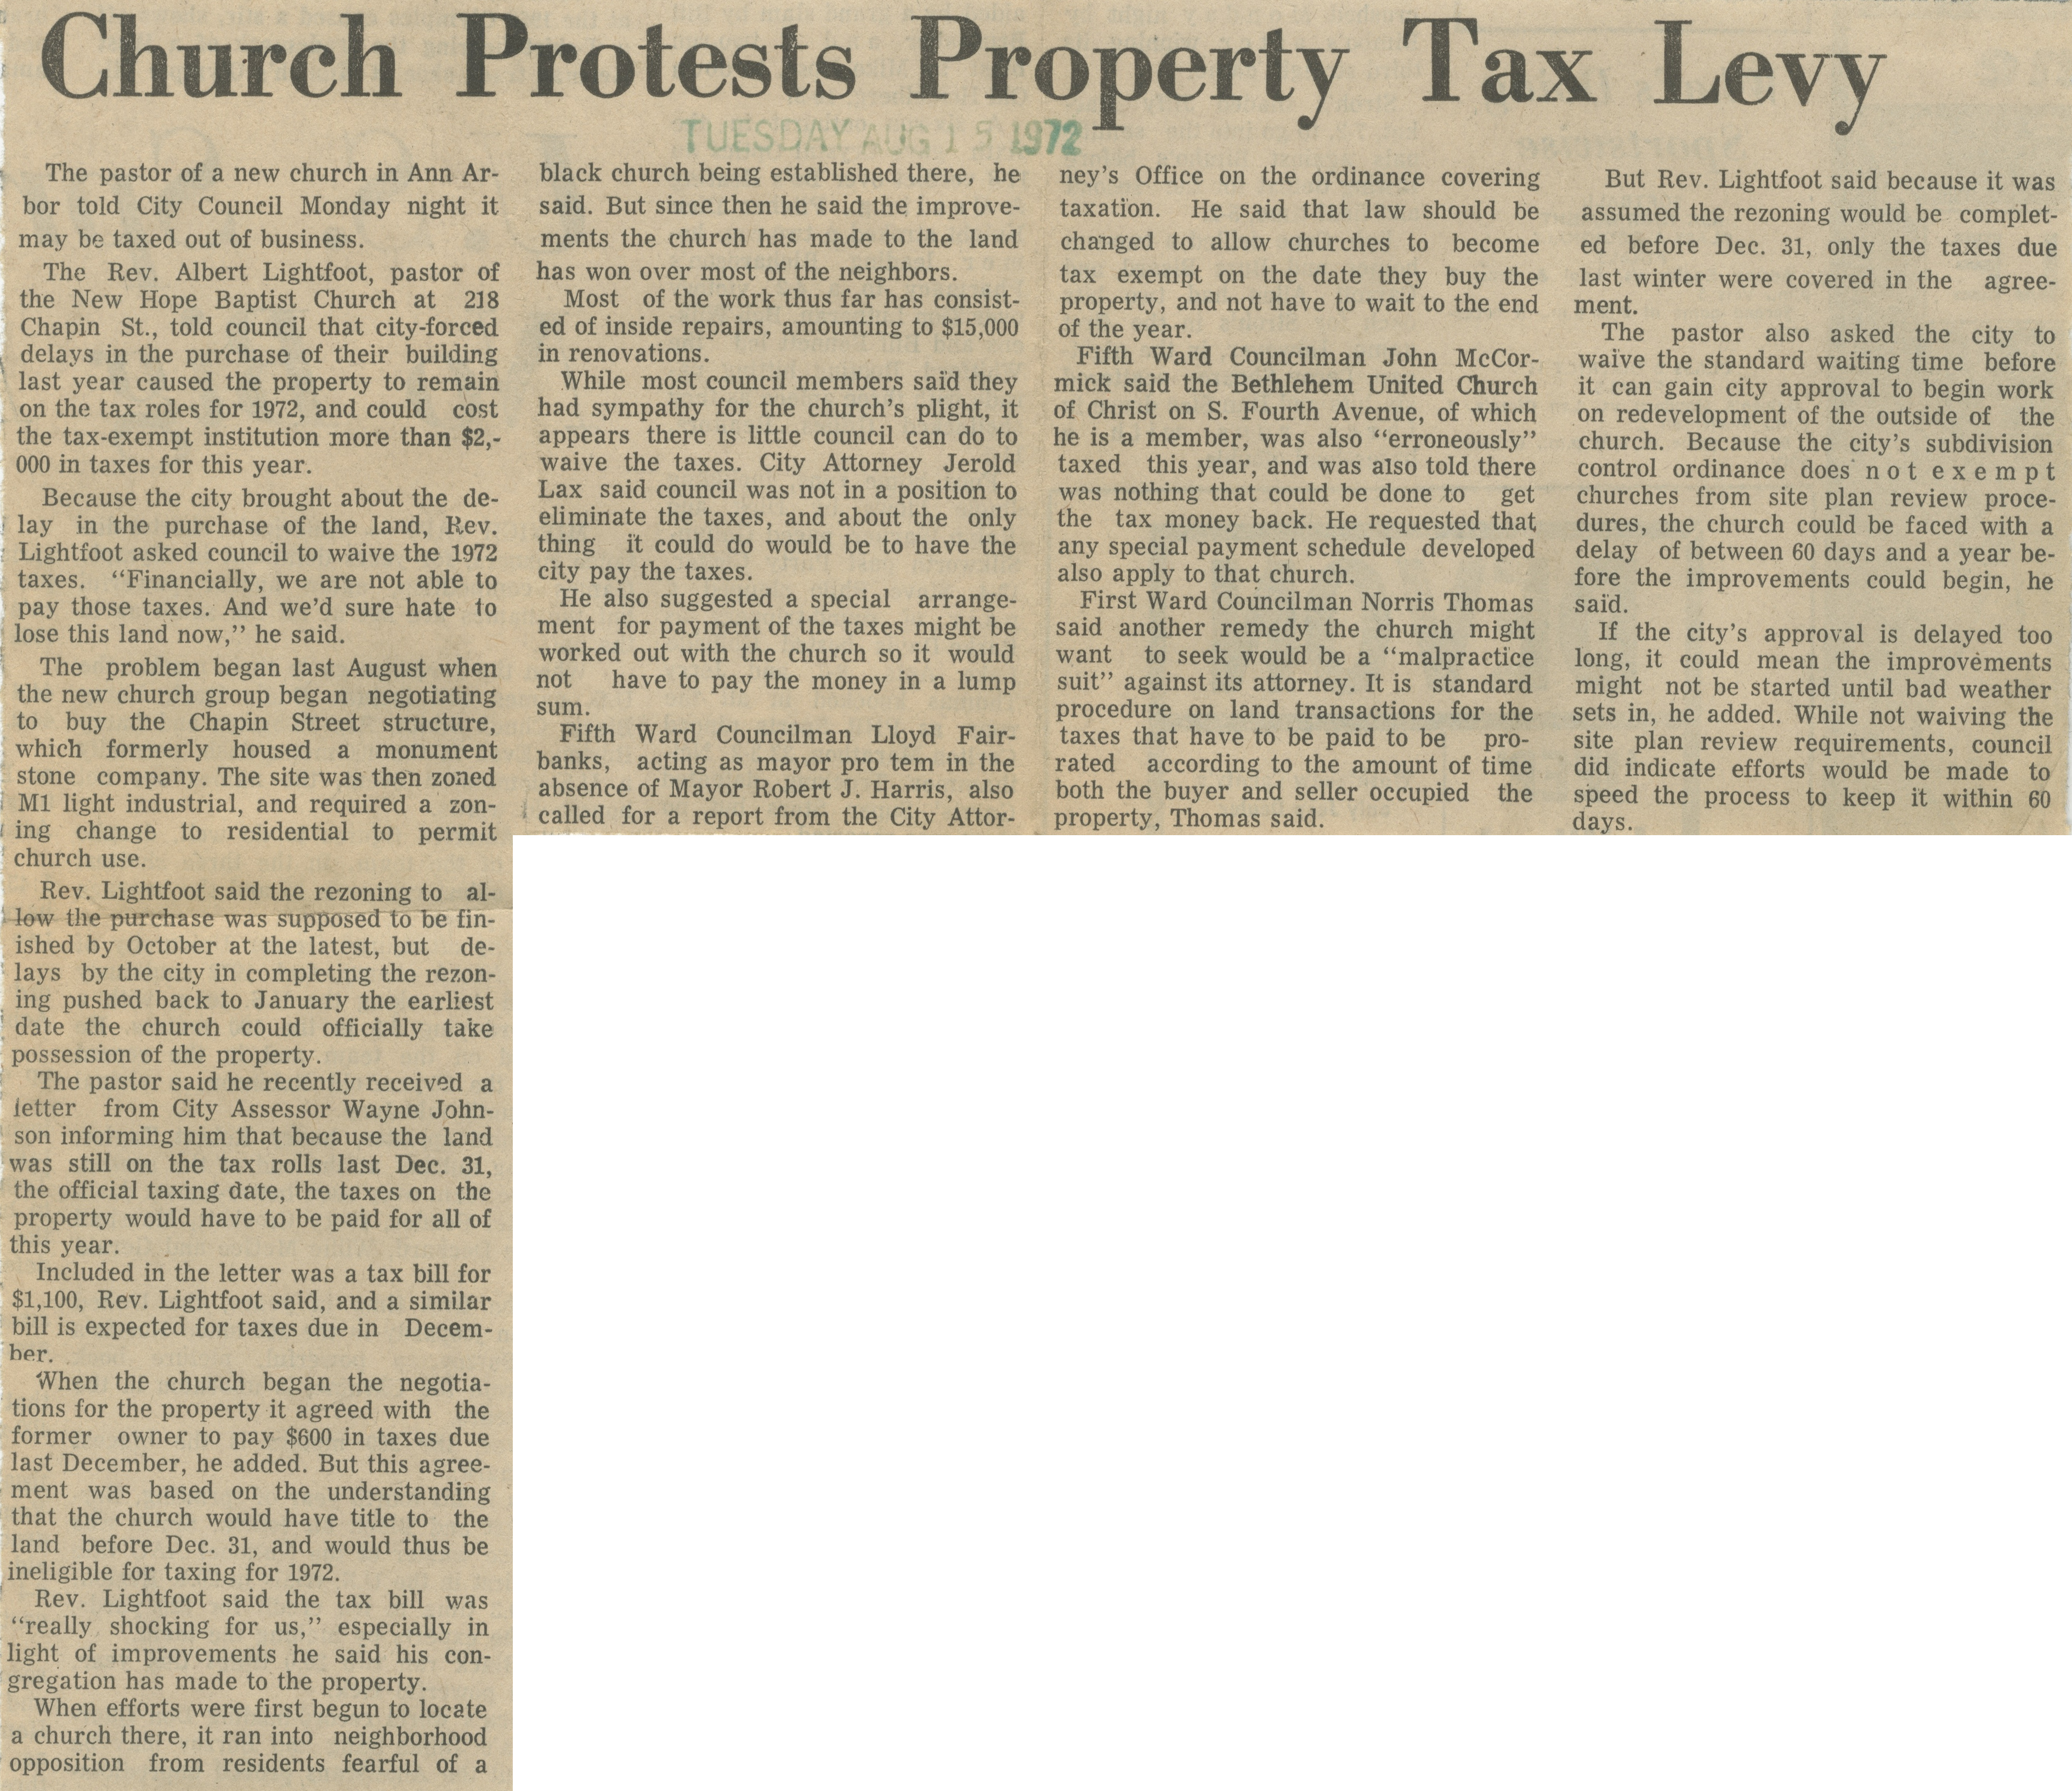 Church Protest Property Tax Levy image